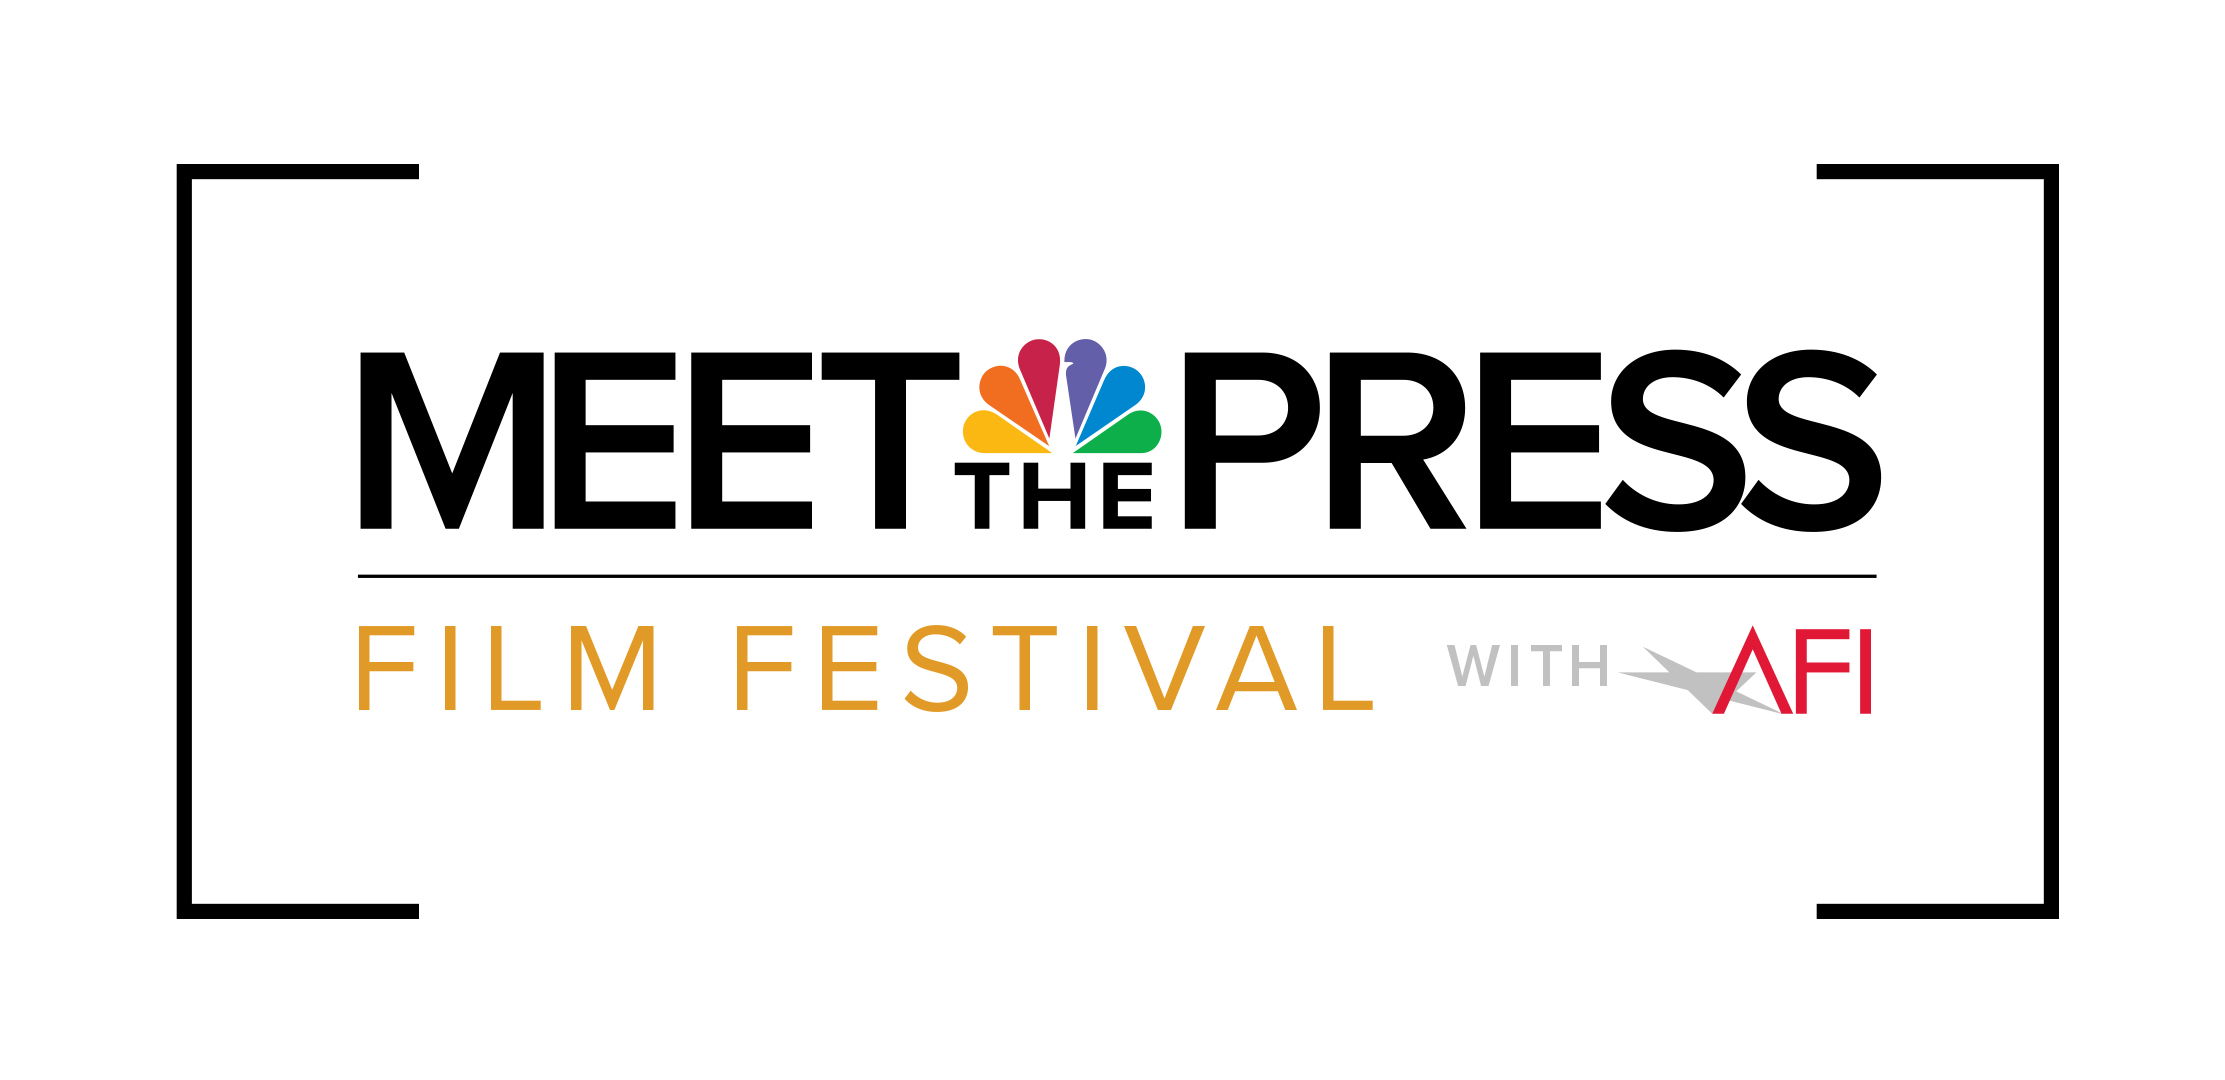 How to watch the meet the press film festival with afi m4hsunfo